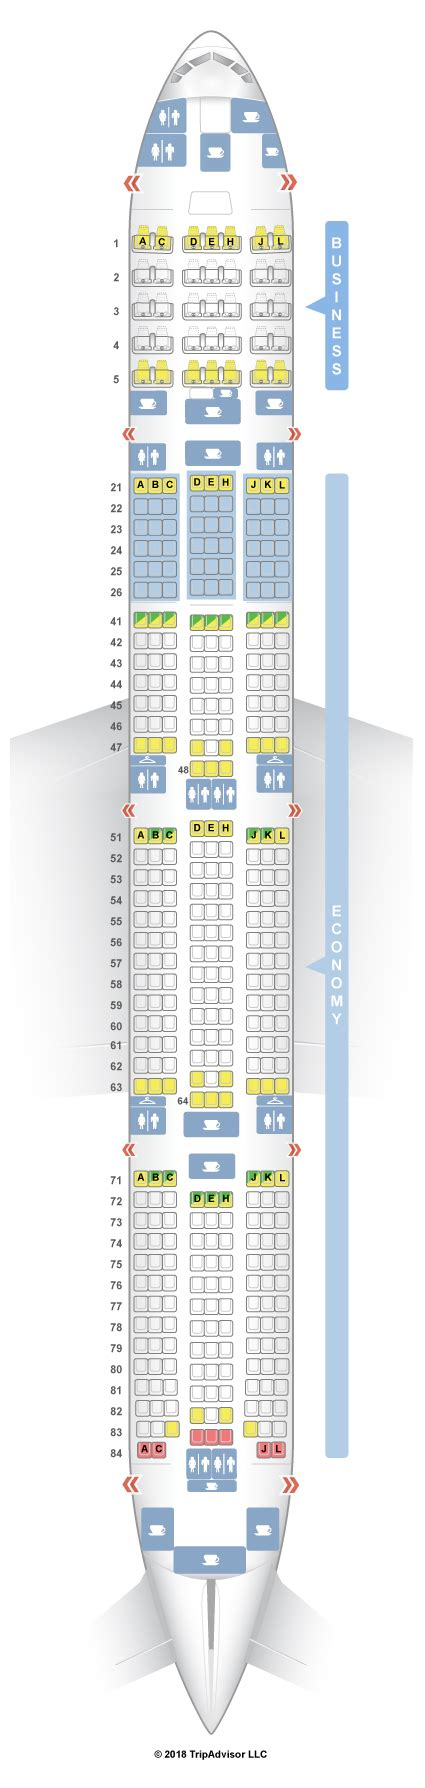 Boeing 777 Turkish Airlines Seating Chart | www